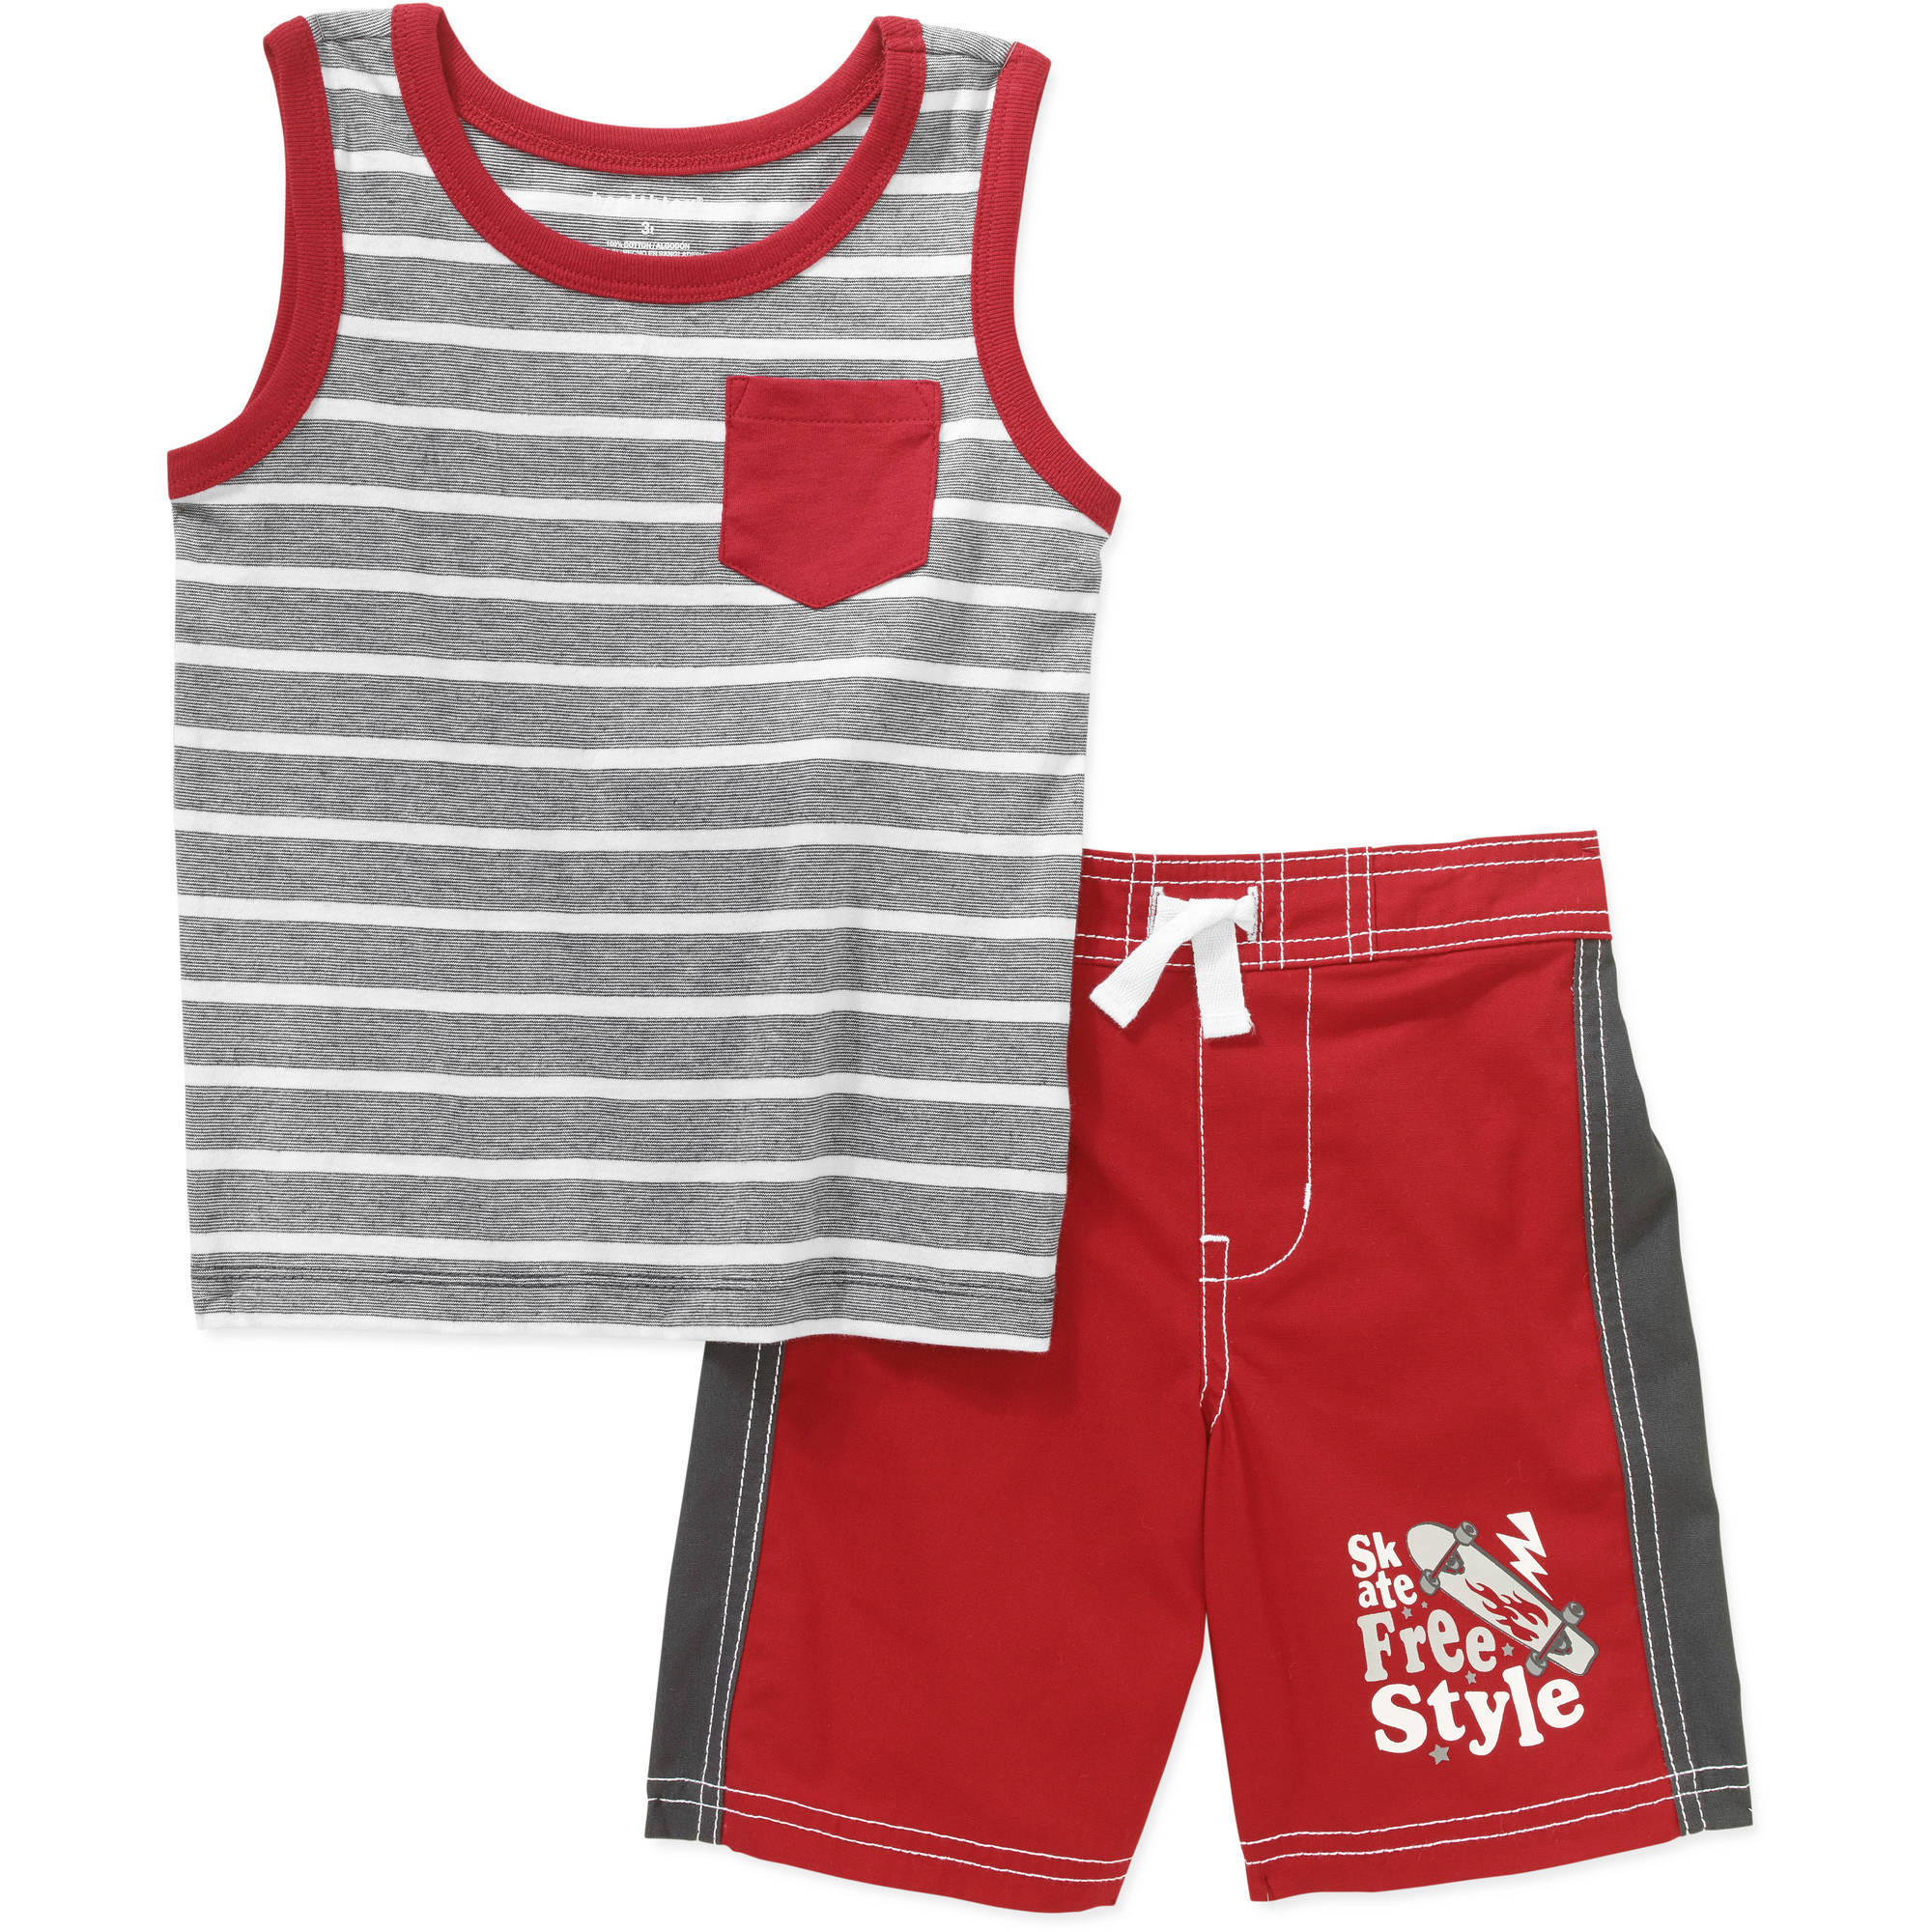 Healthtex Baby Toddler Boy Graphic Tank and Shorts 2-Piece Outfit Set